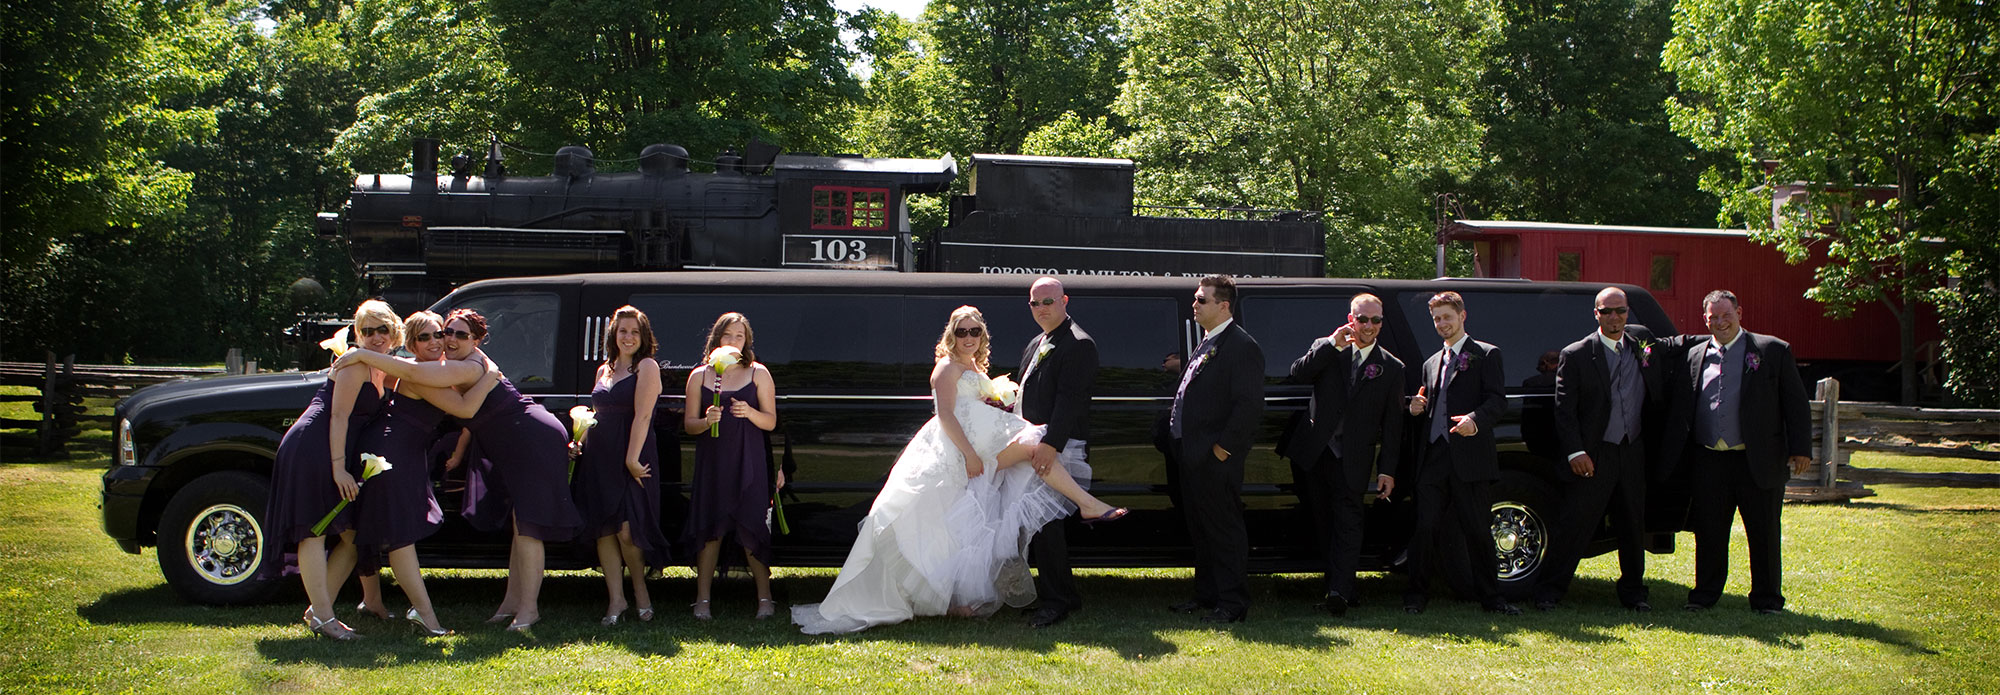 Wedding black limousine waterloo park